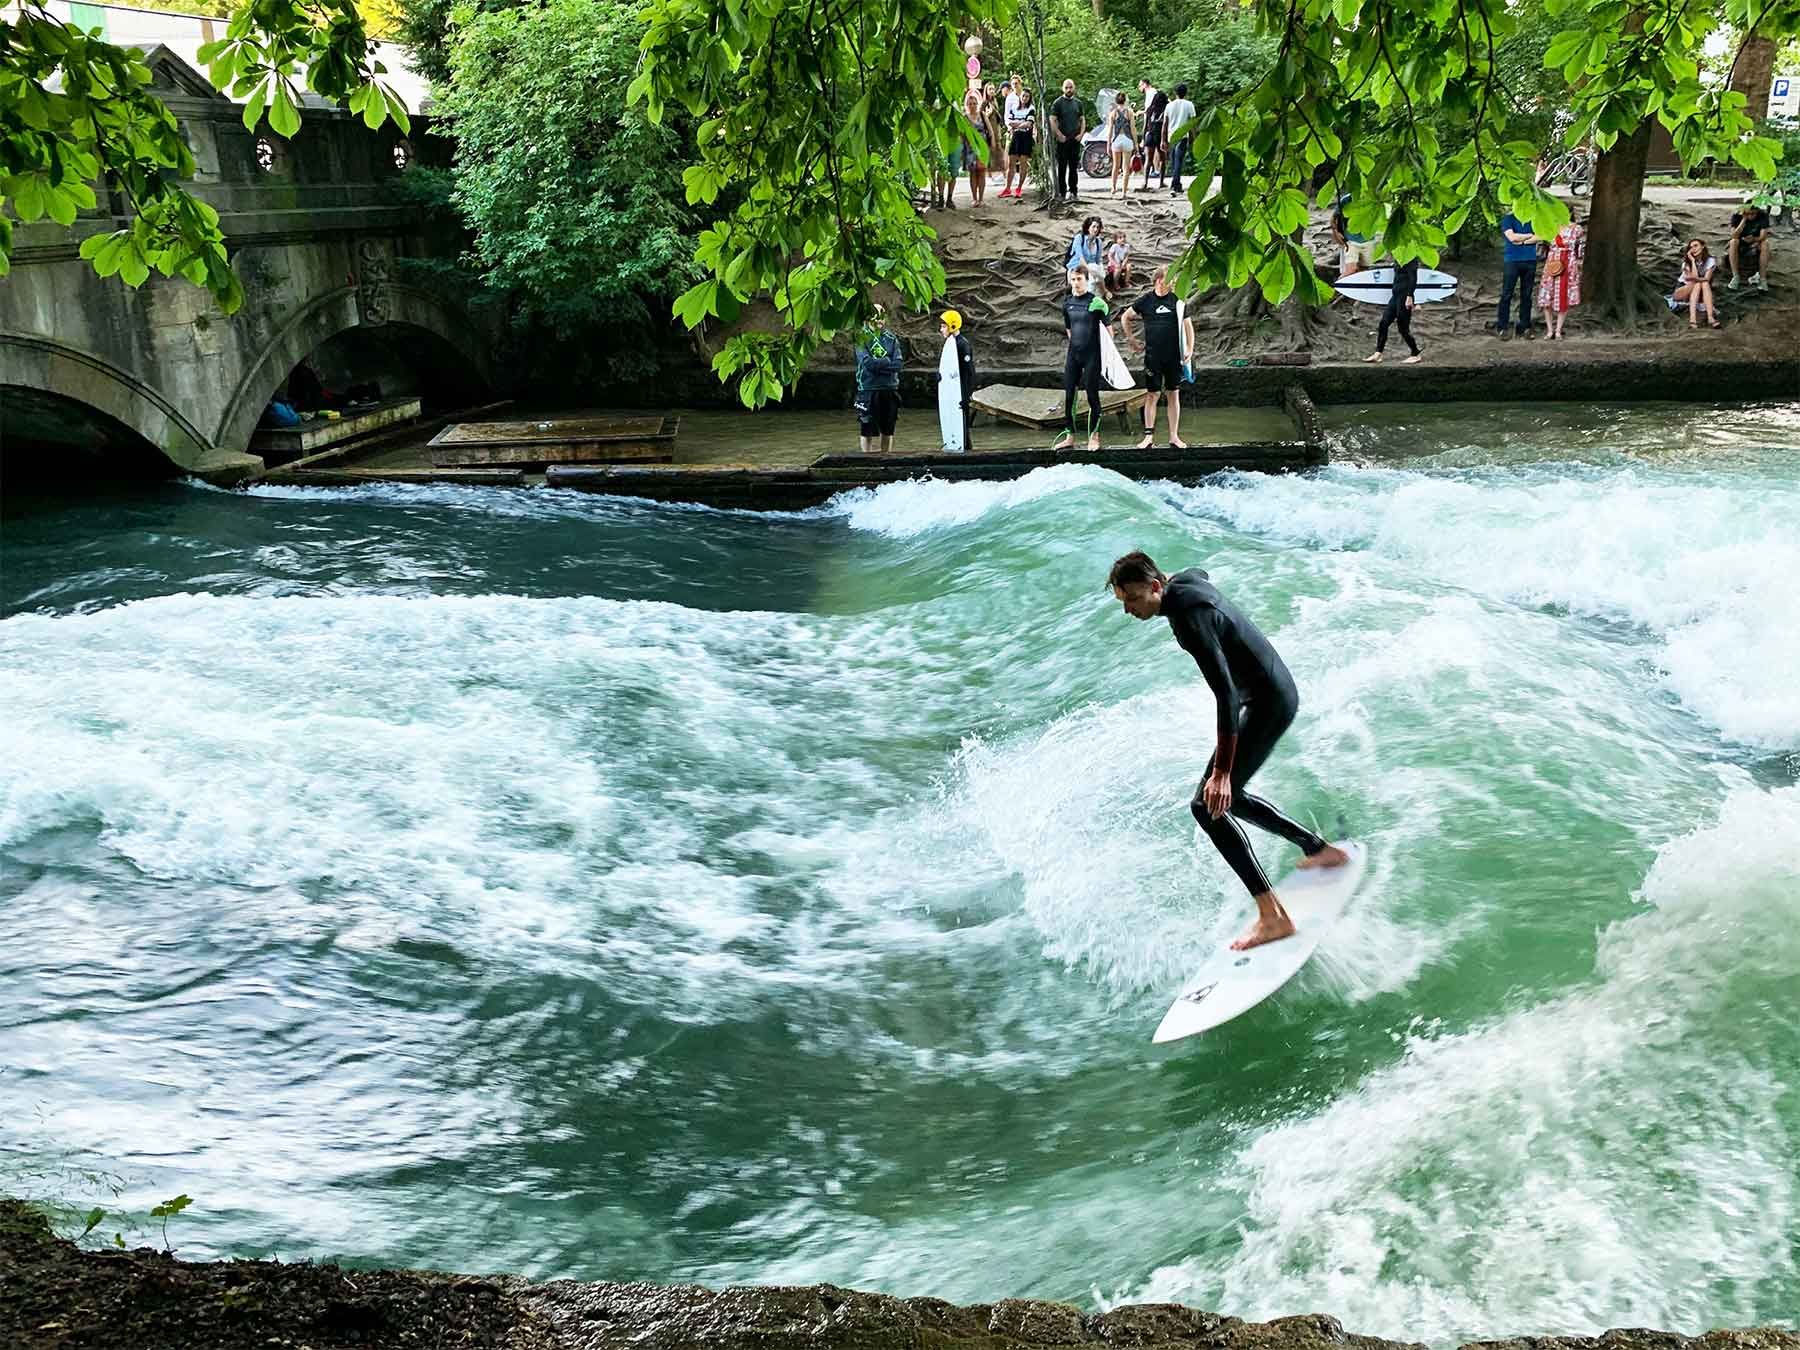 German surfer | Eisbach River Wave | Surf Tourism Research | Dr Steven Andrew Martin | Munich Germany